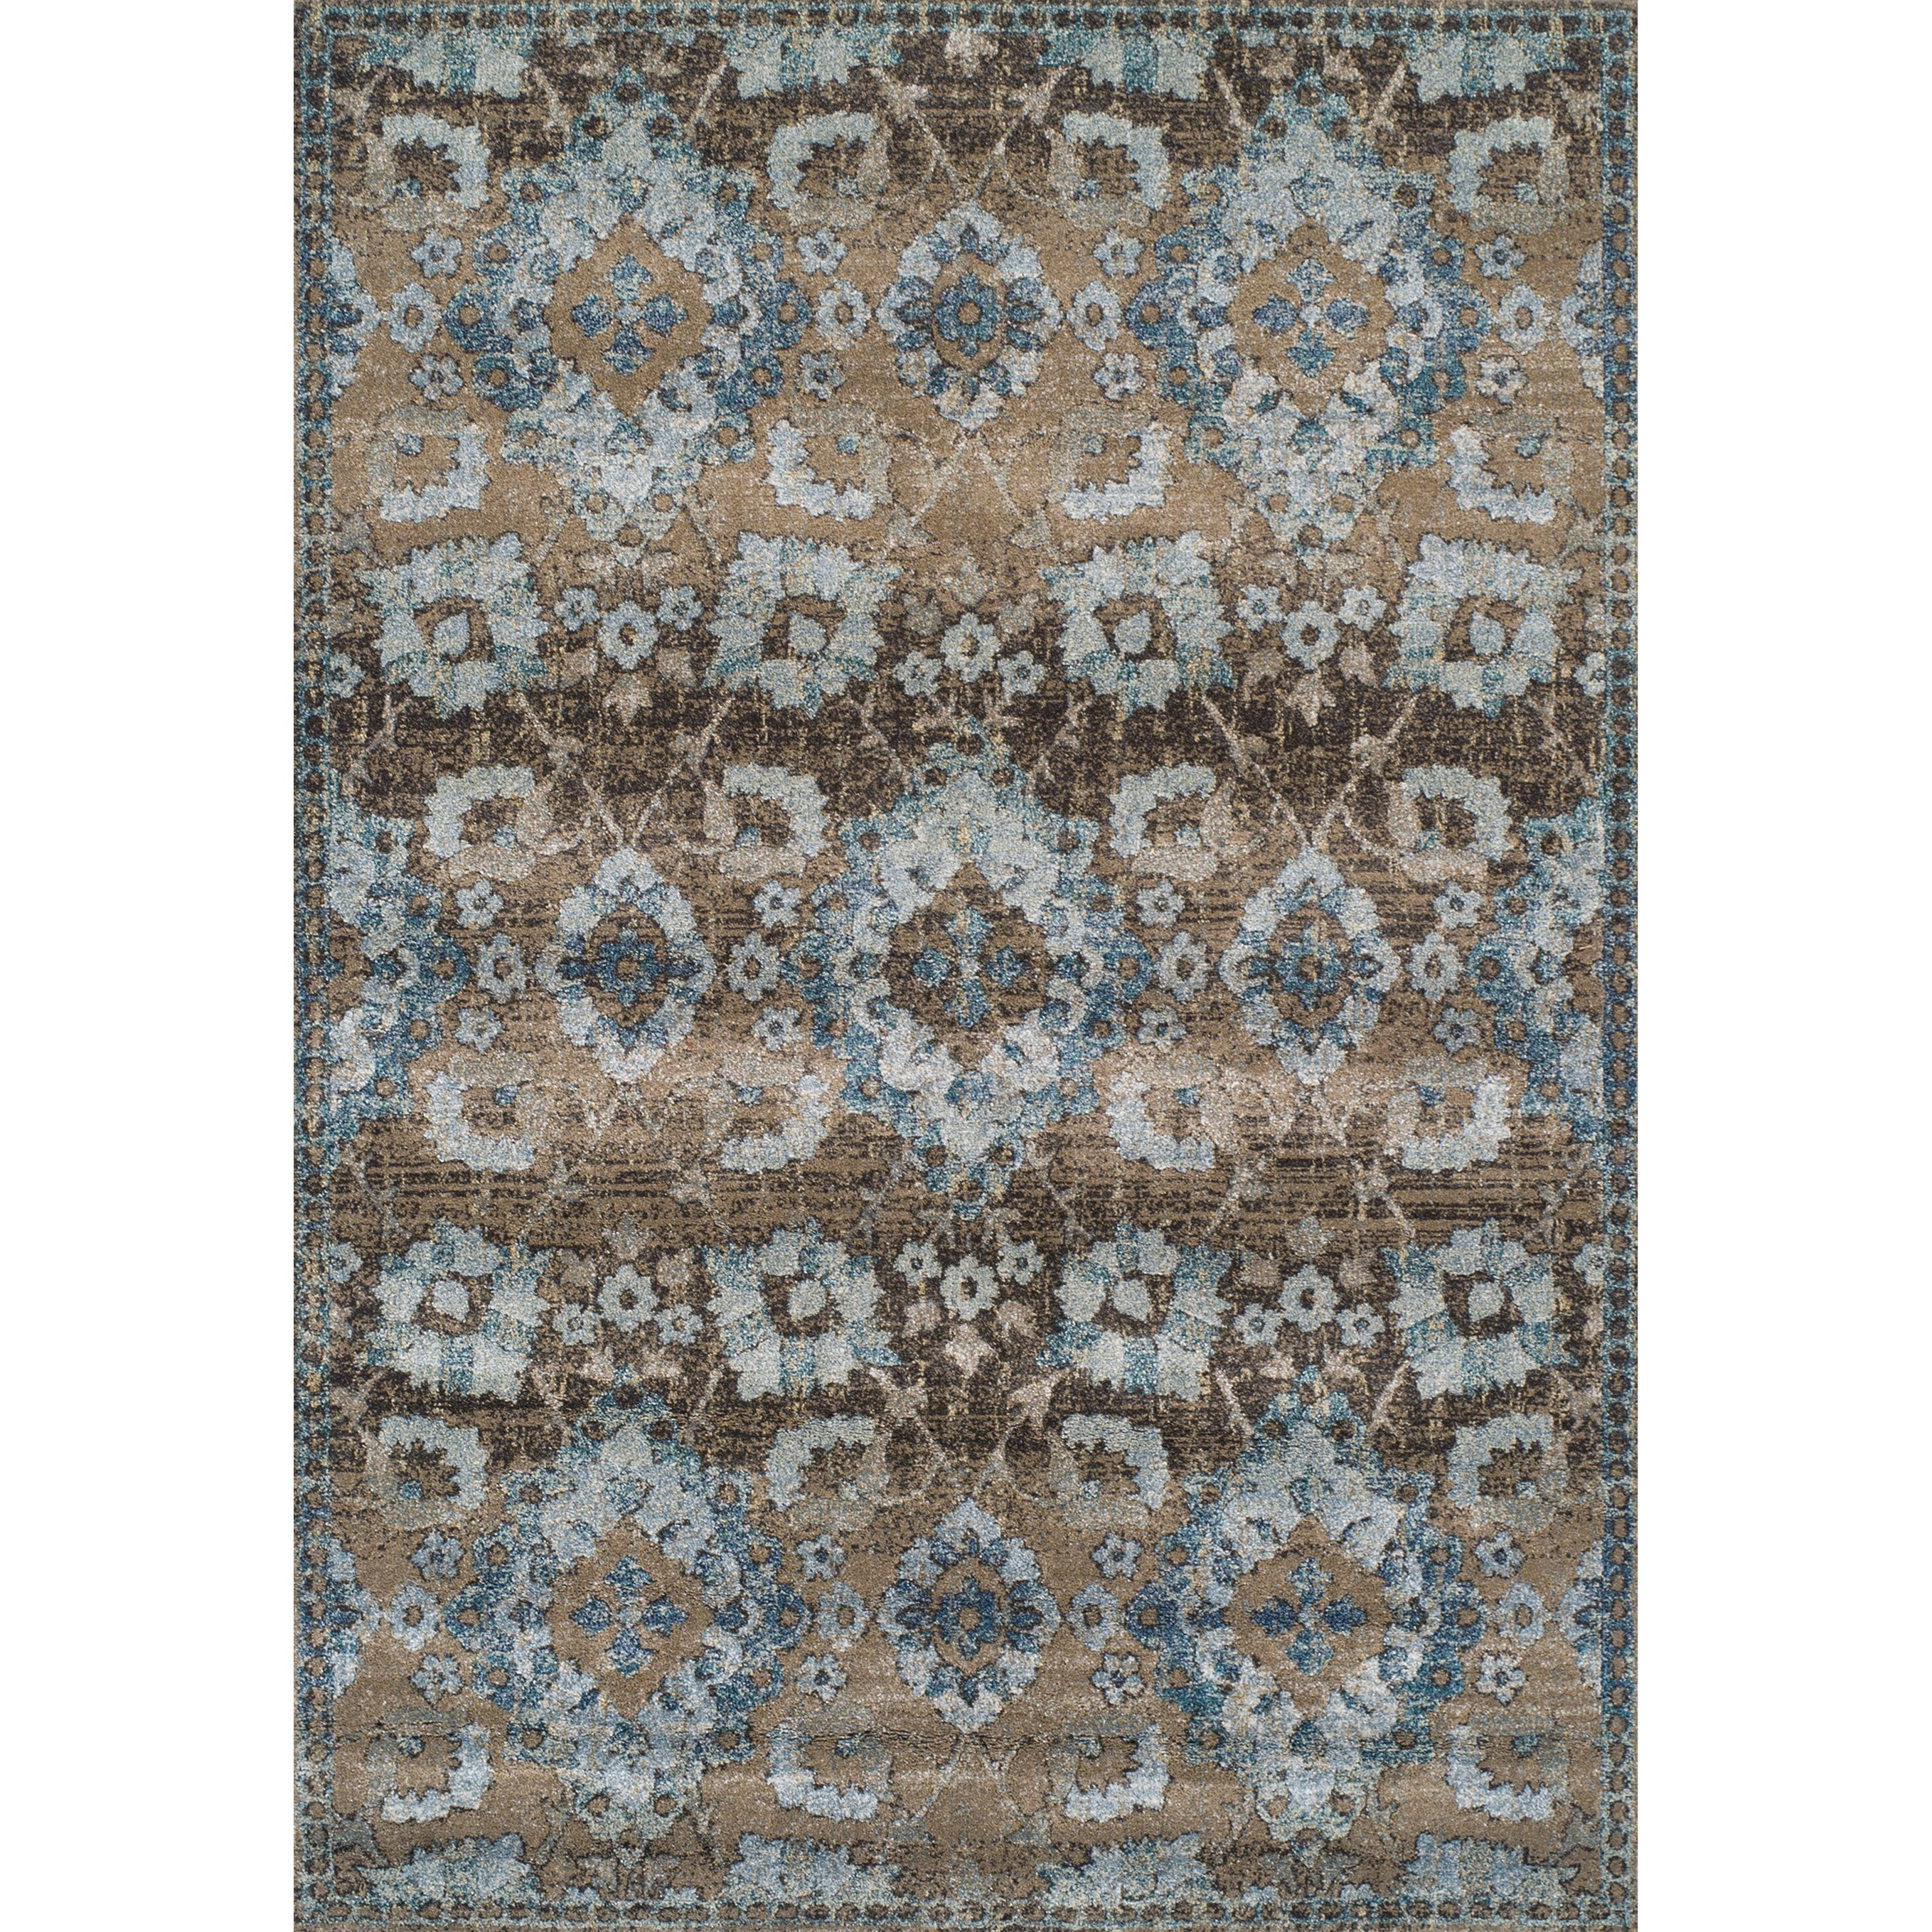 "Antigua Mocha 9'6""X13'2"" Area Rug by Dalyn at Sadler's Home Furnishings"